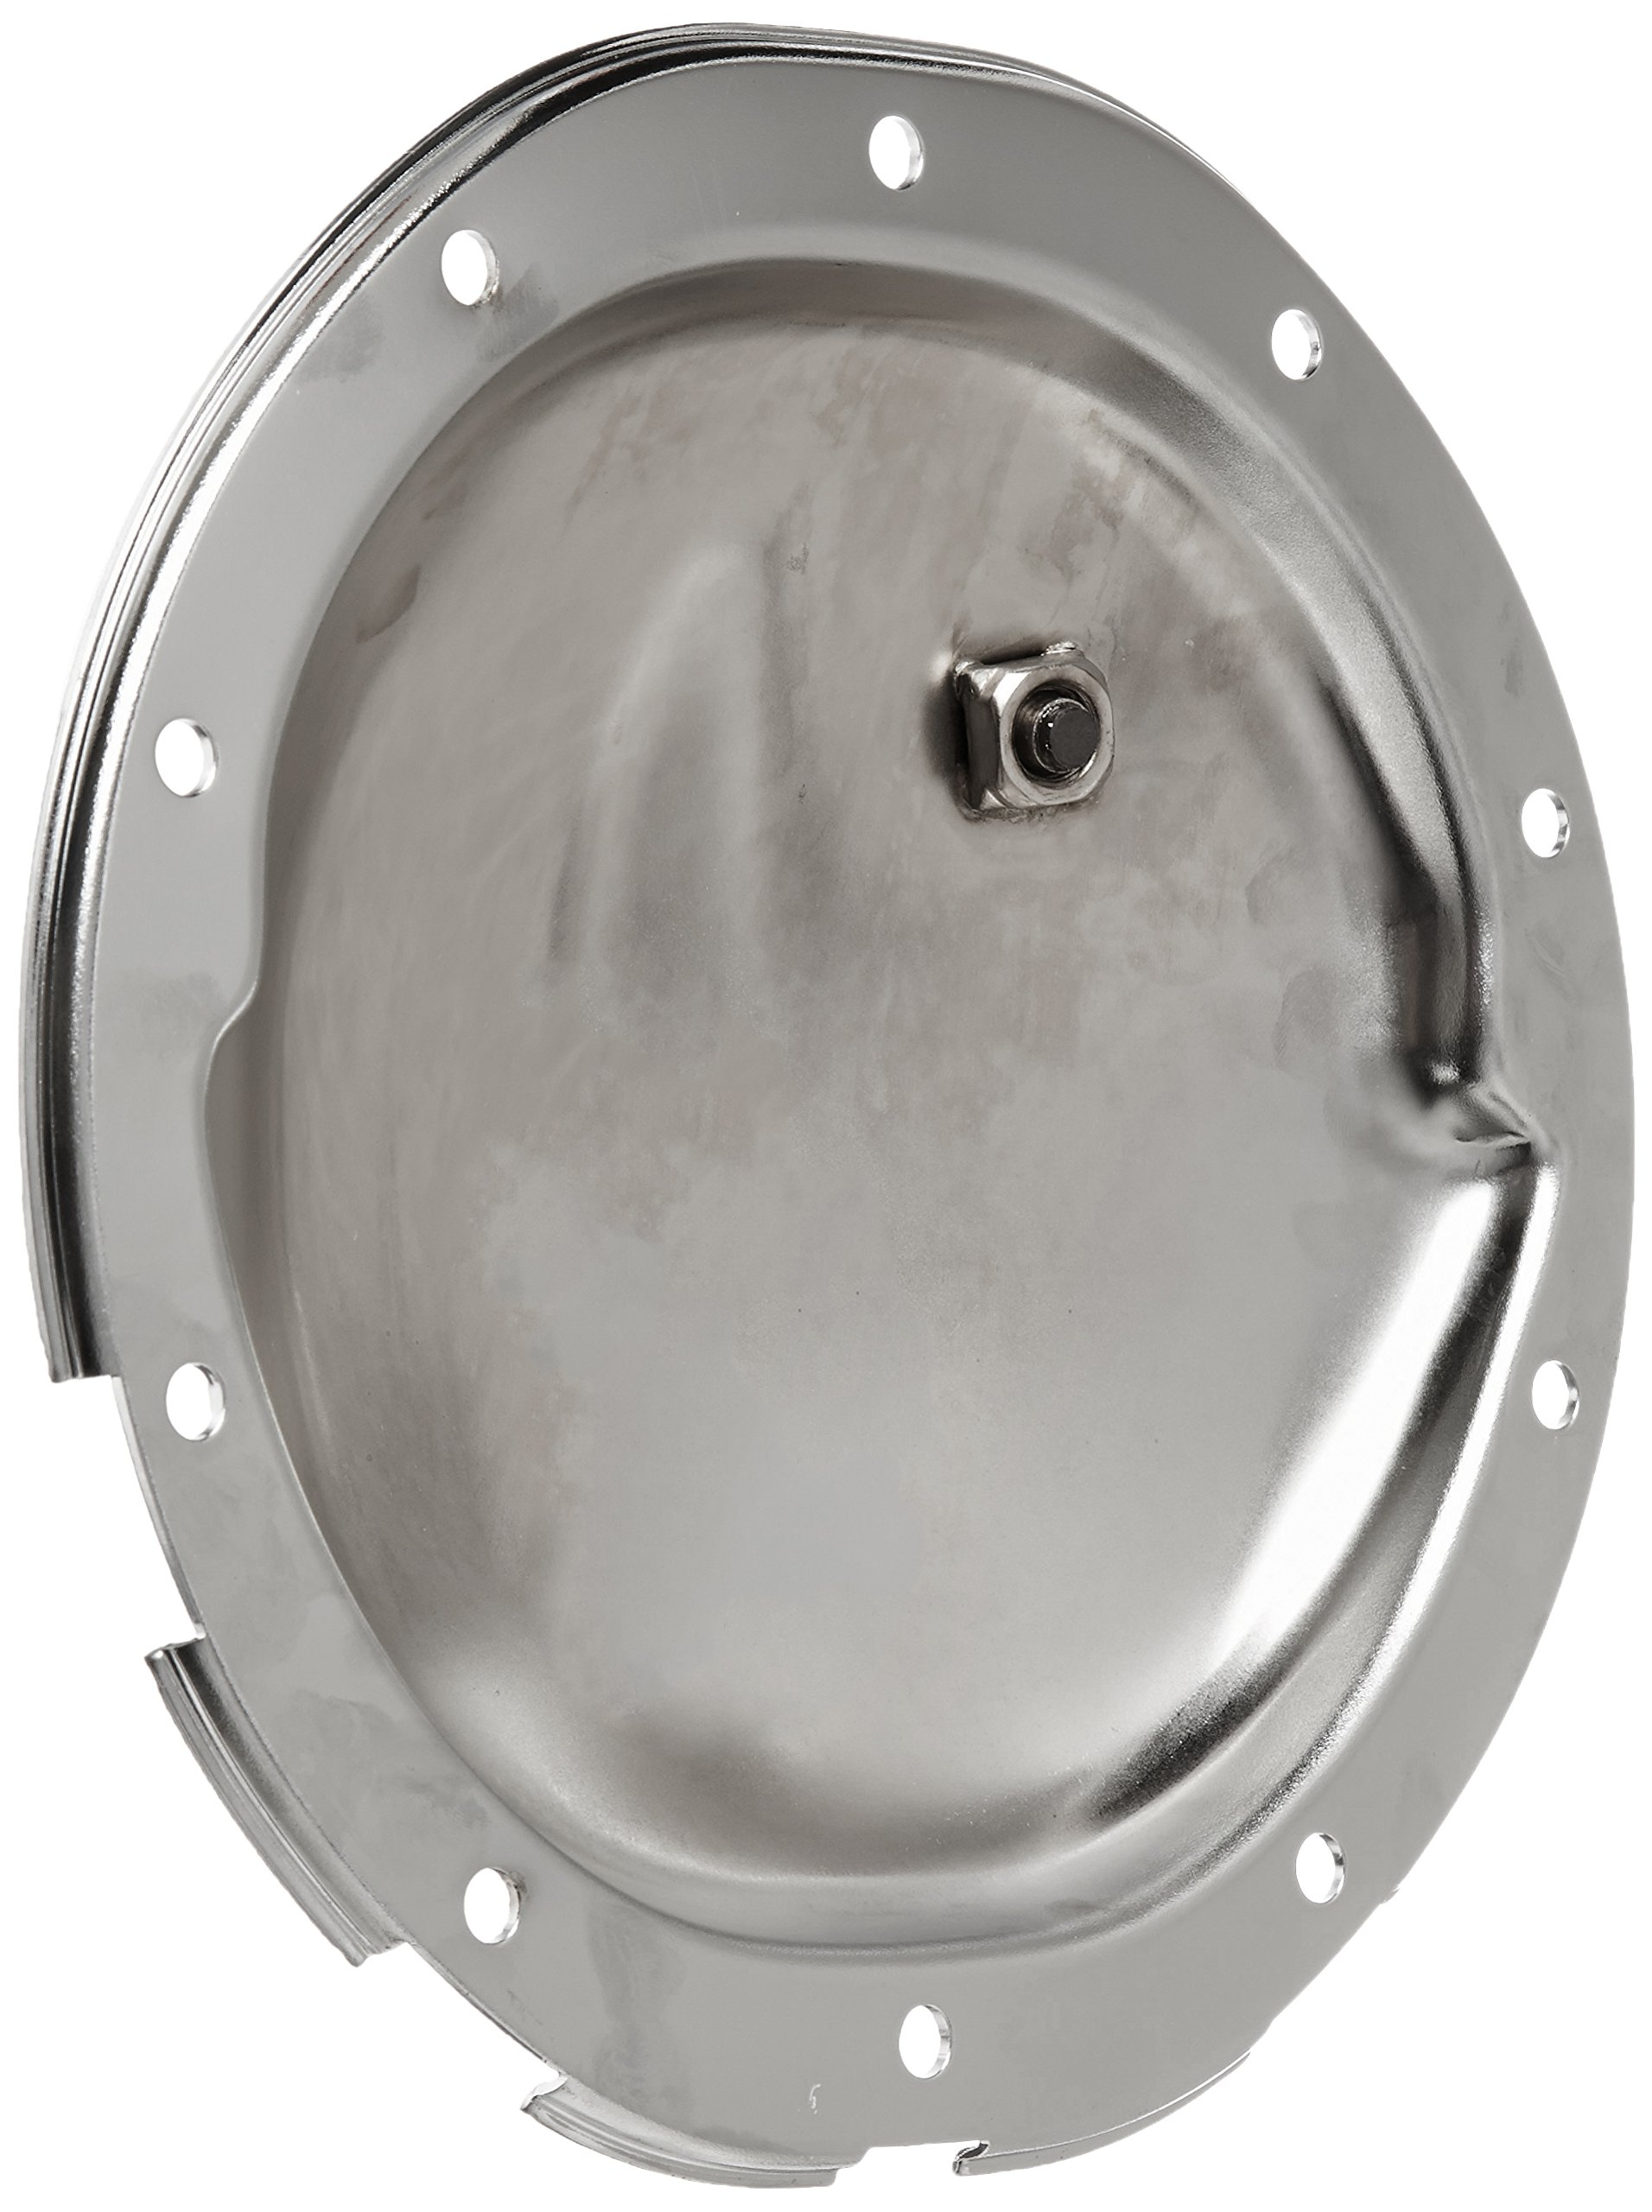 Trans-Dapt 9037 Chrome Differential Cover Kit by Trans-Dapt Performance (Image #2)